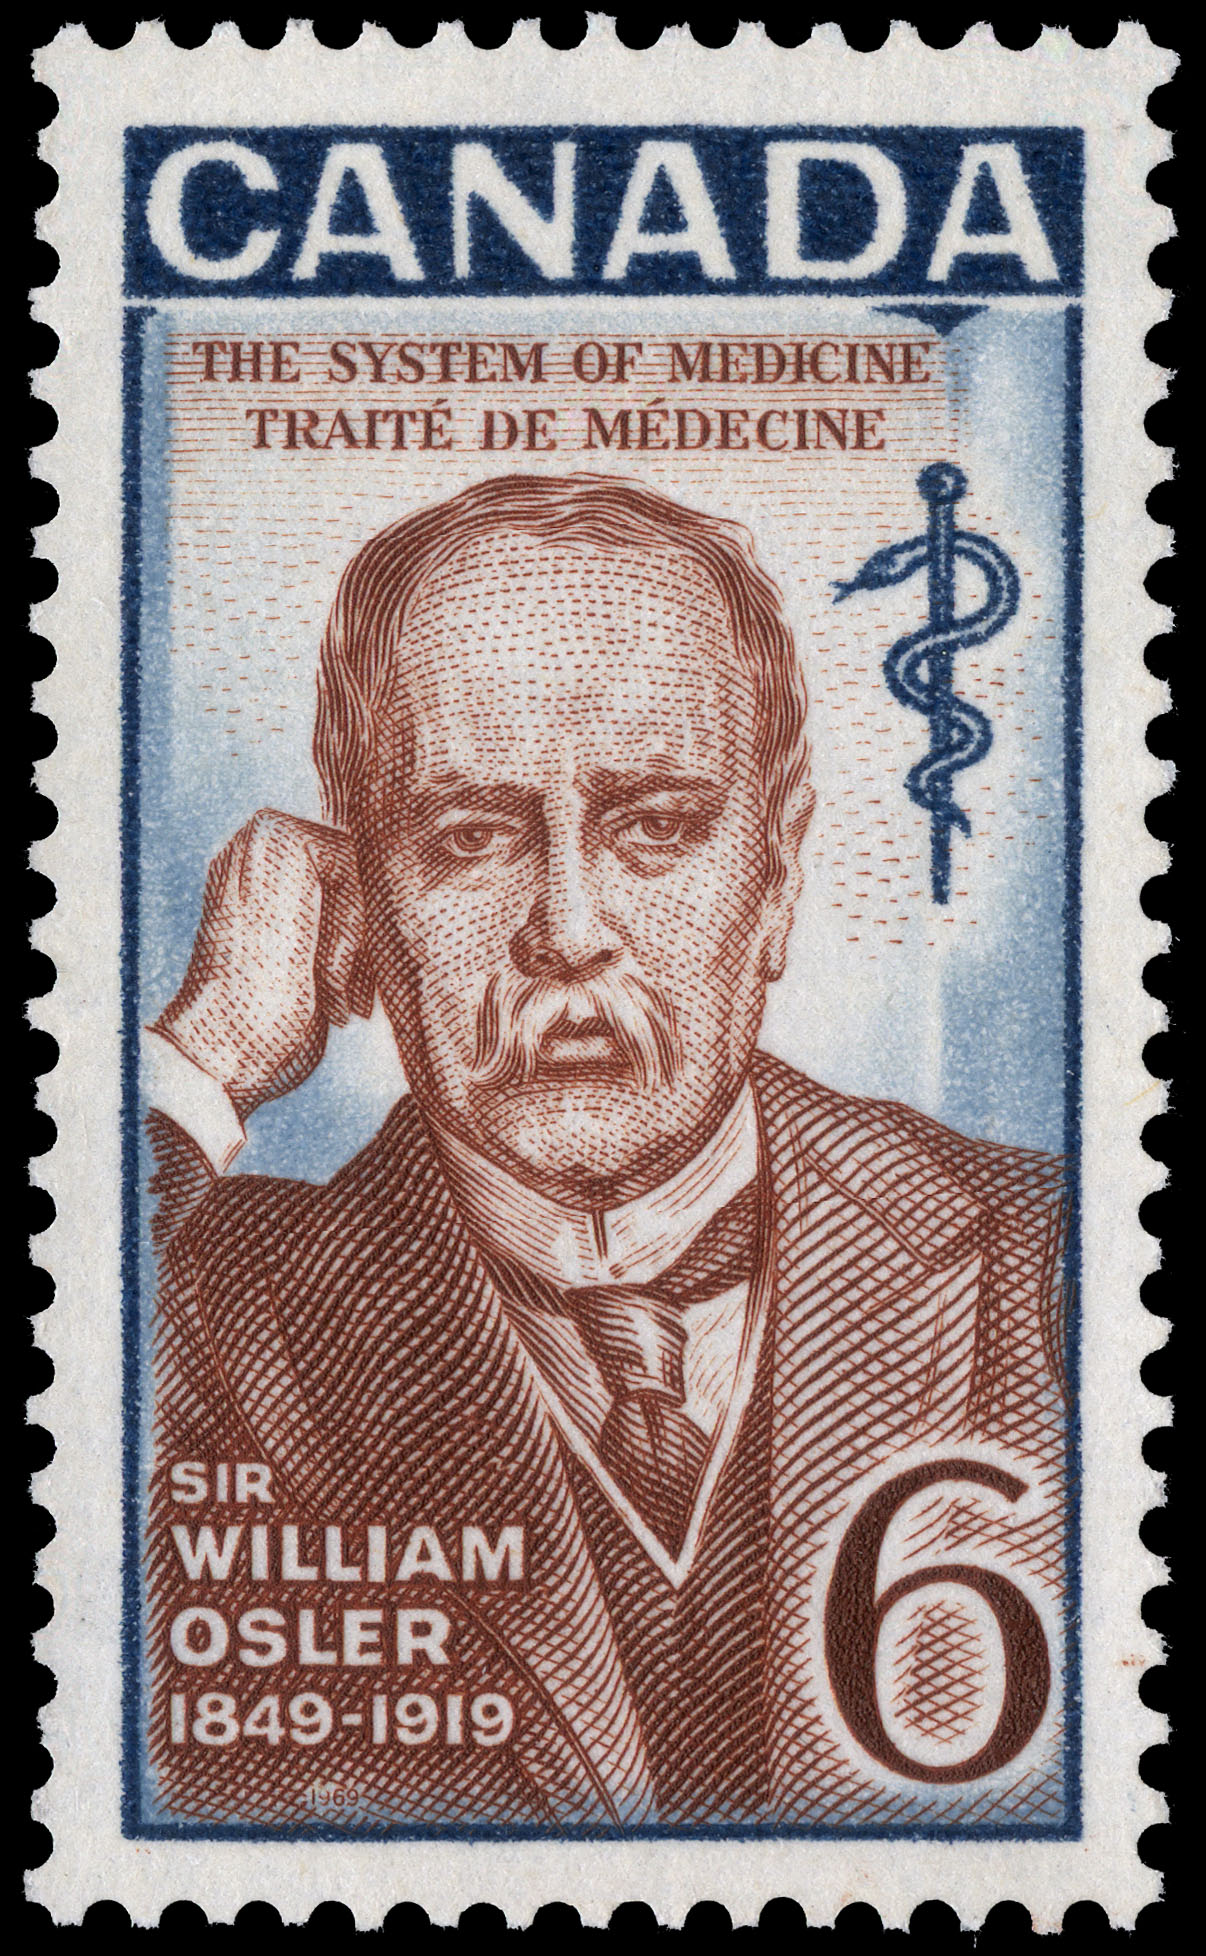 Sir William Osler, 1849-1919, The System of Medicine Canada Postage Stamp